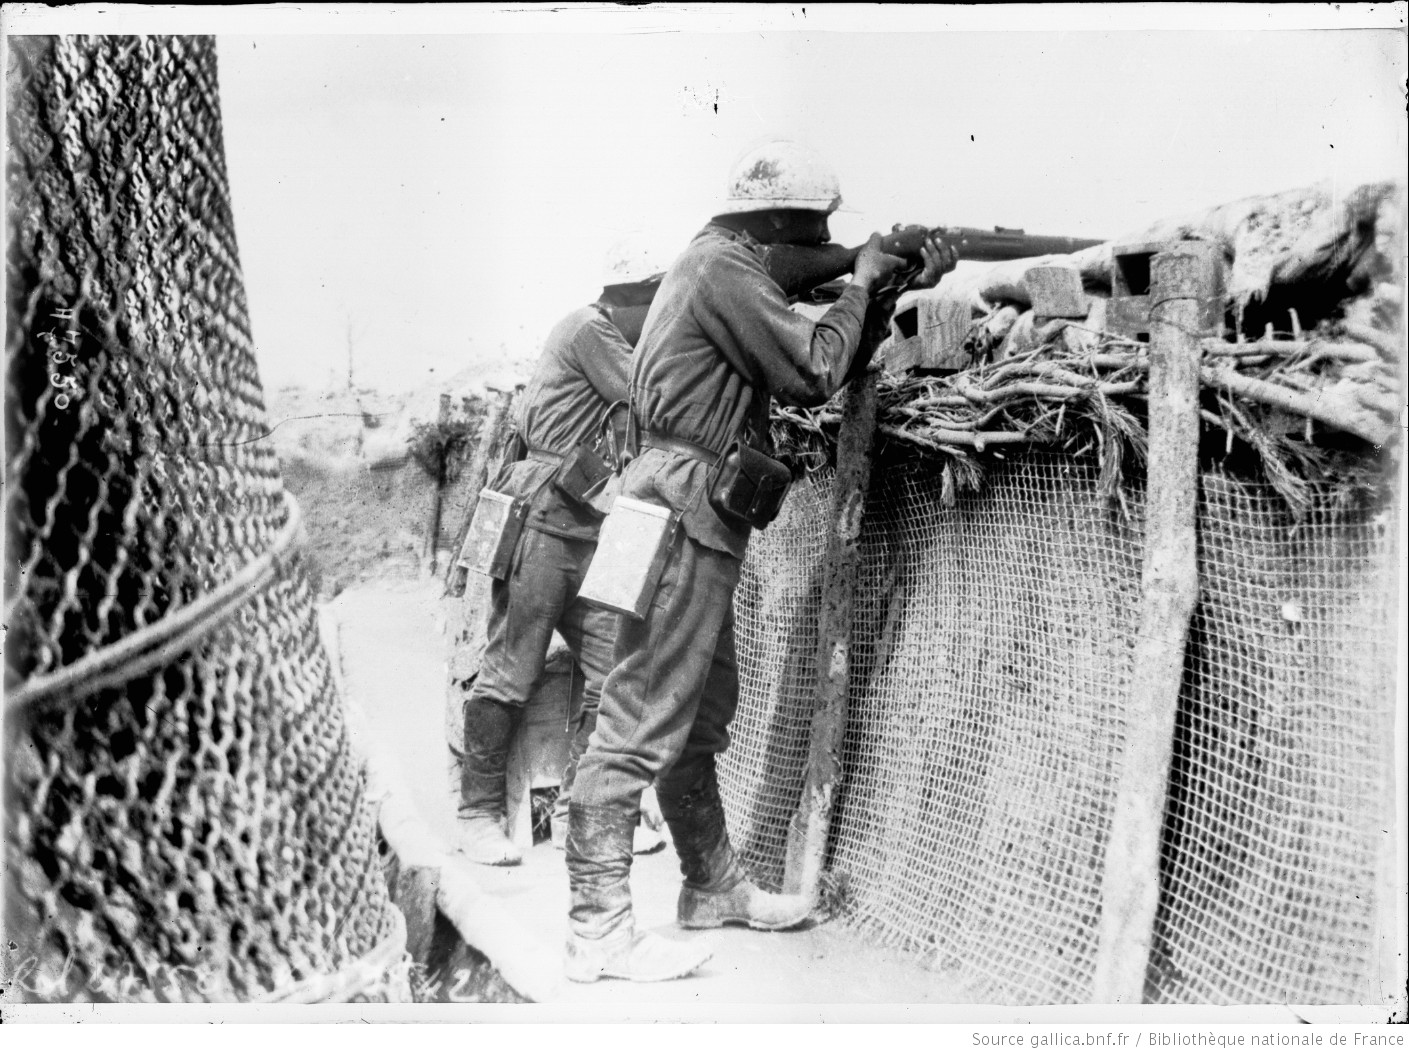 A Russian held trench in the French sector near Reims, July 1916. The men are part of the 'Russian Expeditionary Corps'. #WW1 #1GM https://t.co/7qhQbOXlVy